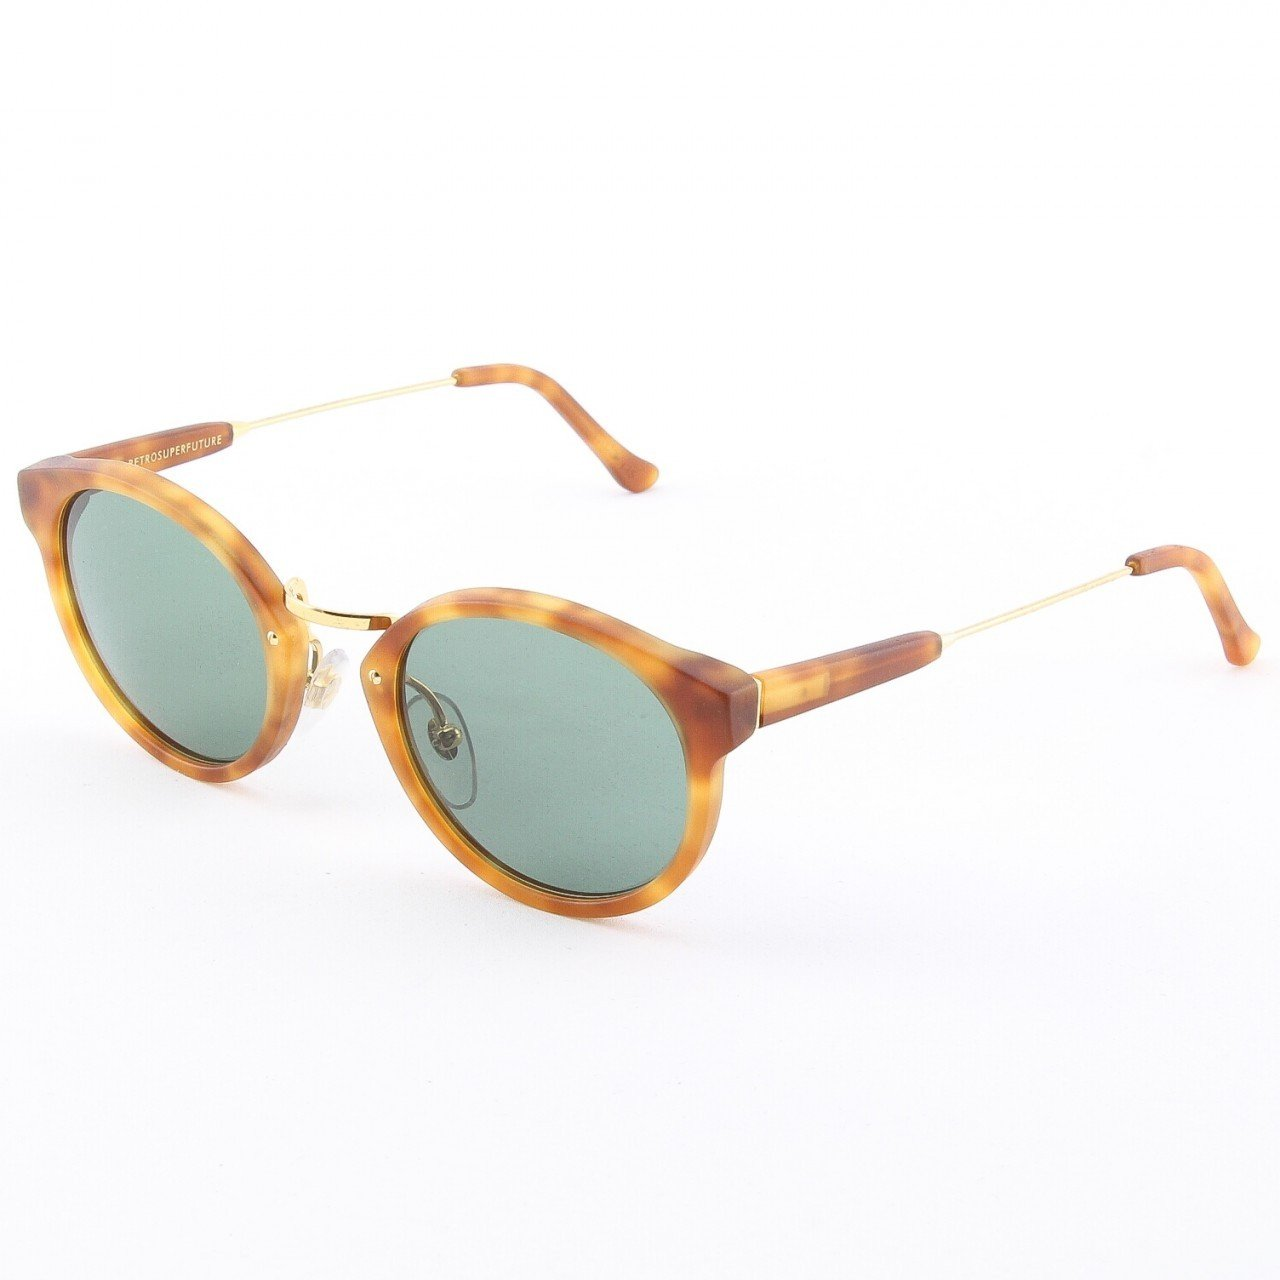 Super Panama BHM 474/2T Sunglasses by RETROSUPERFUTURE Color Brown Havana with Green Zeiss Lenses